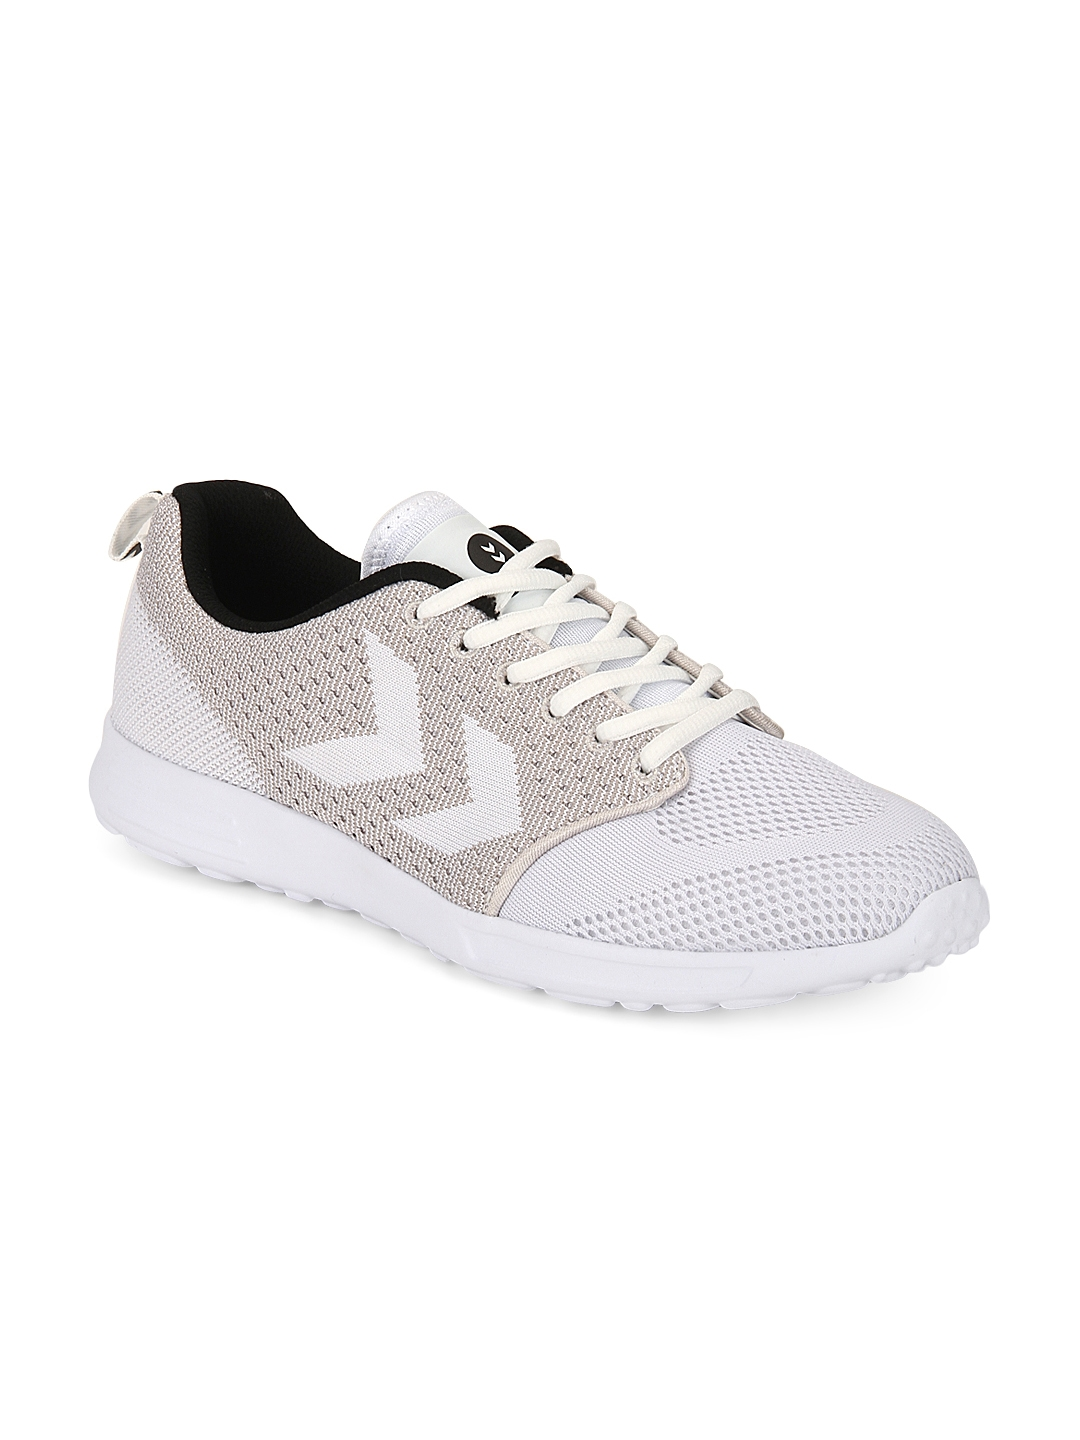 Buy Unisex Shoes Sports Ii White Hummel For Zeroknit wZvqwRa1